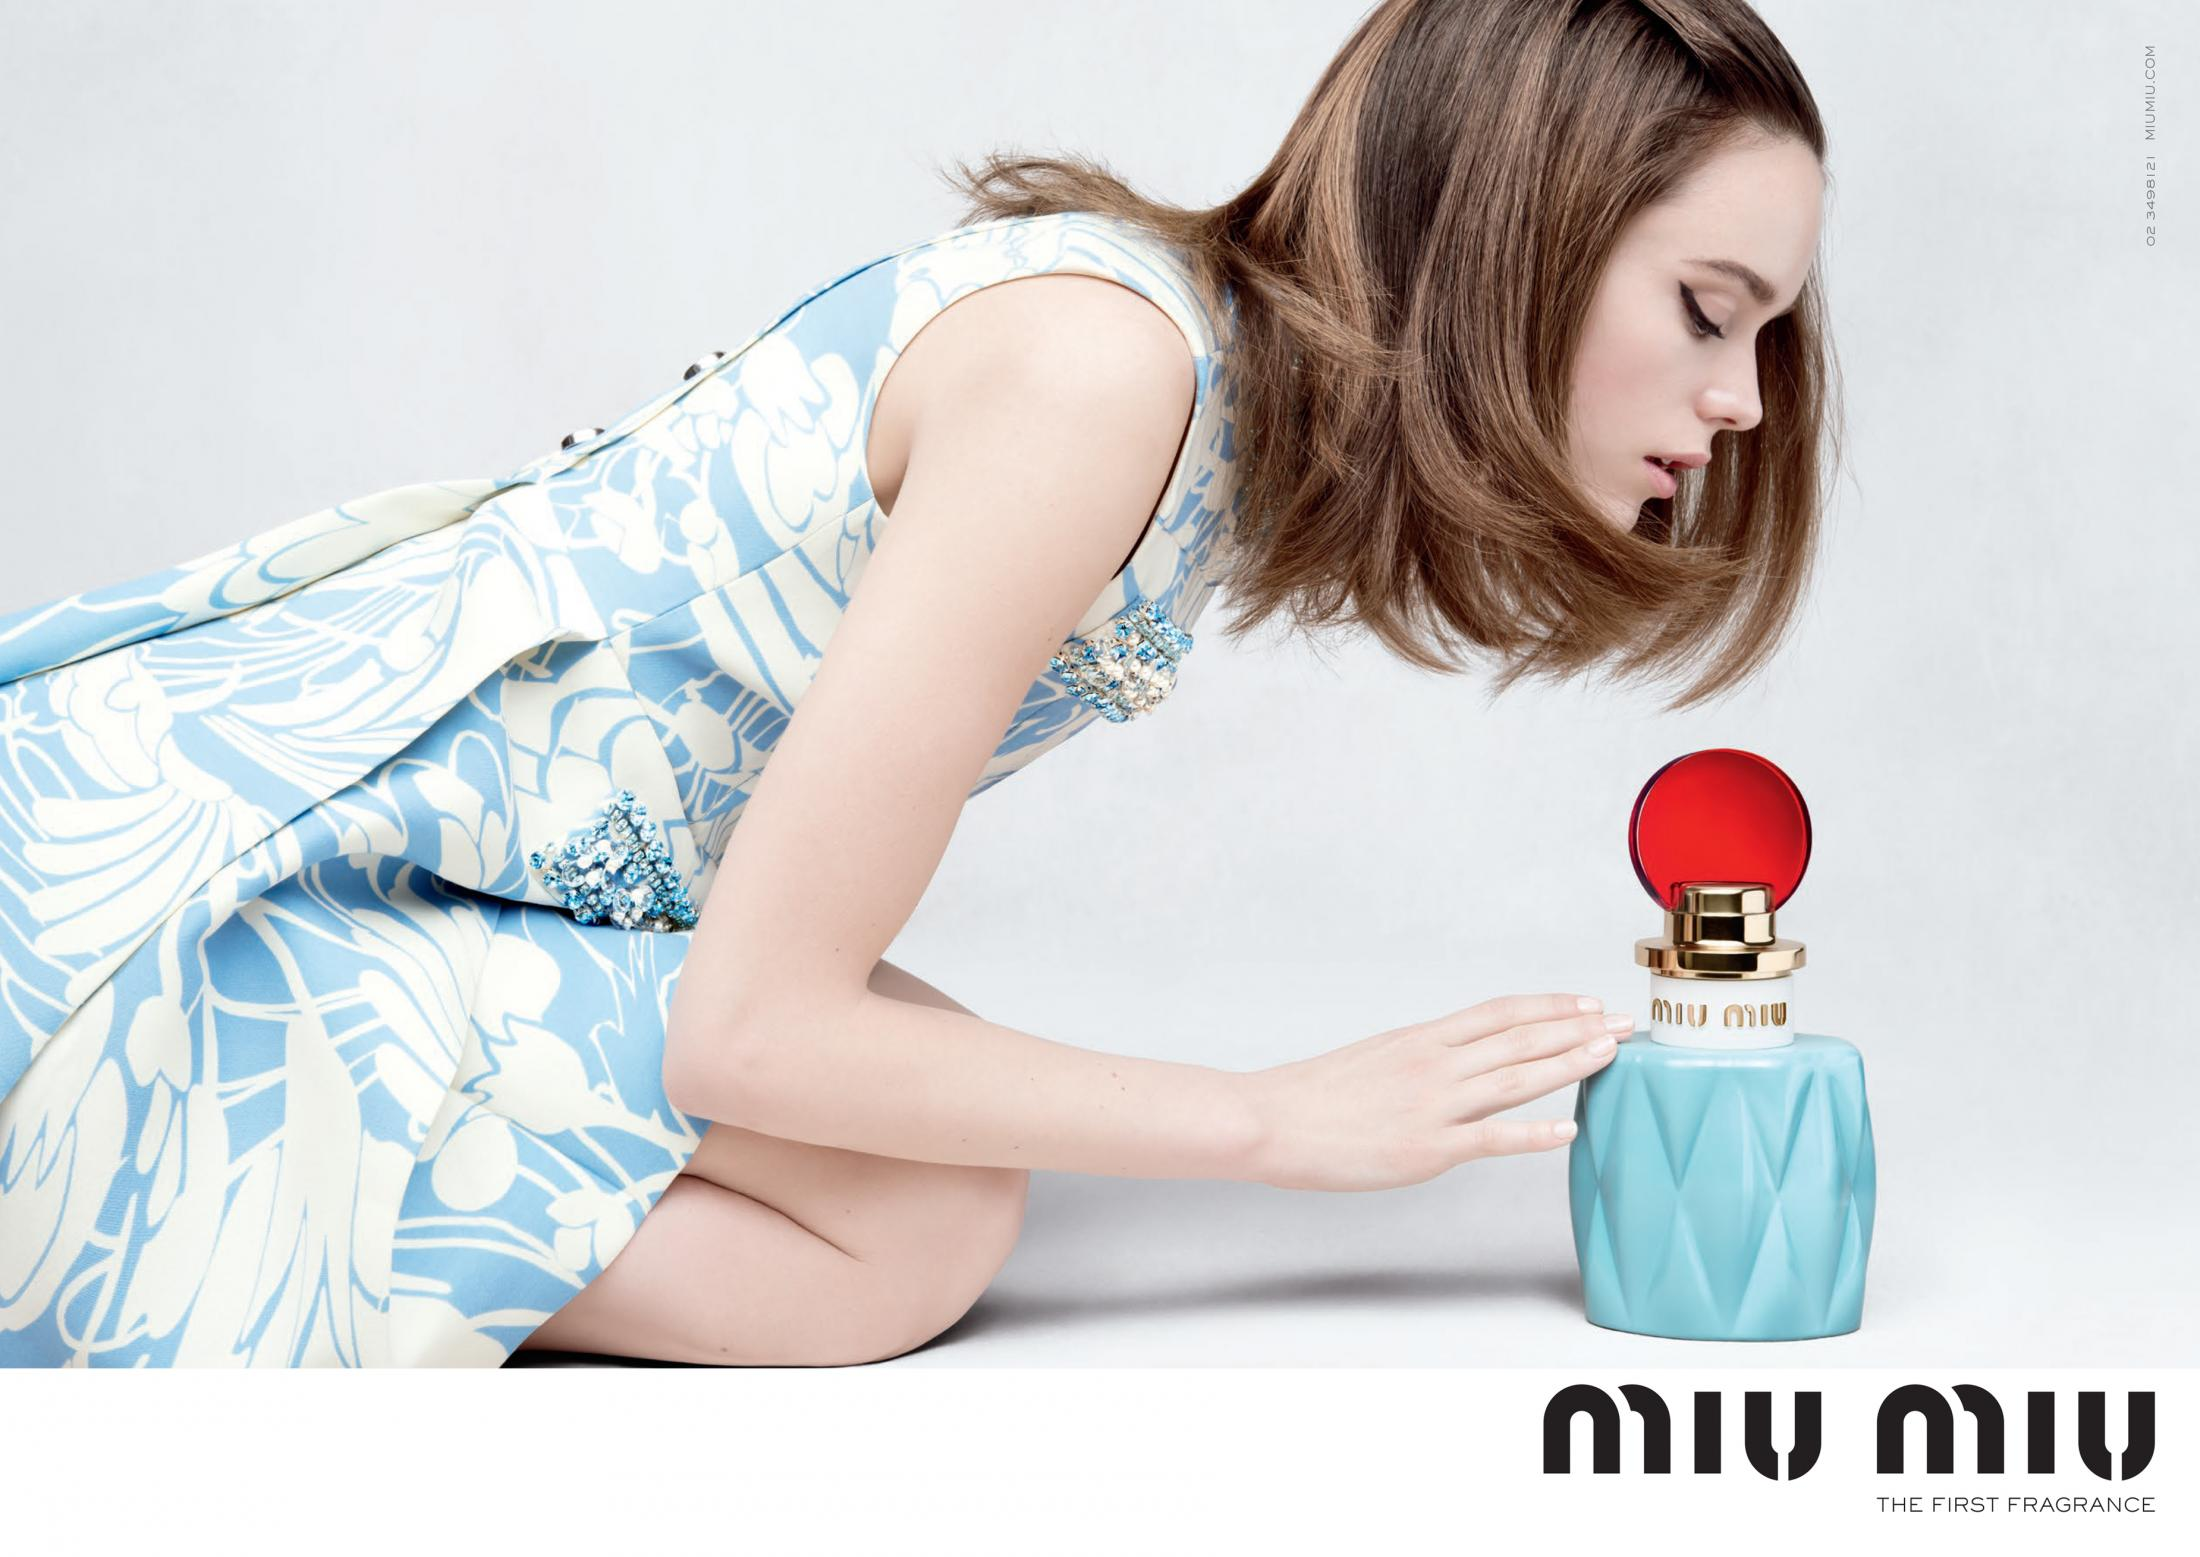 The First Miu Miu Fragrance to Come Out in 2015 The First Miu Miu Fragrance to Come Out in 2015 new photo